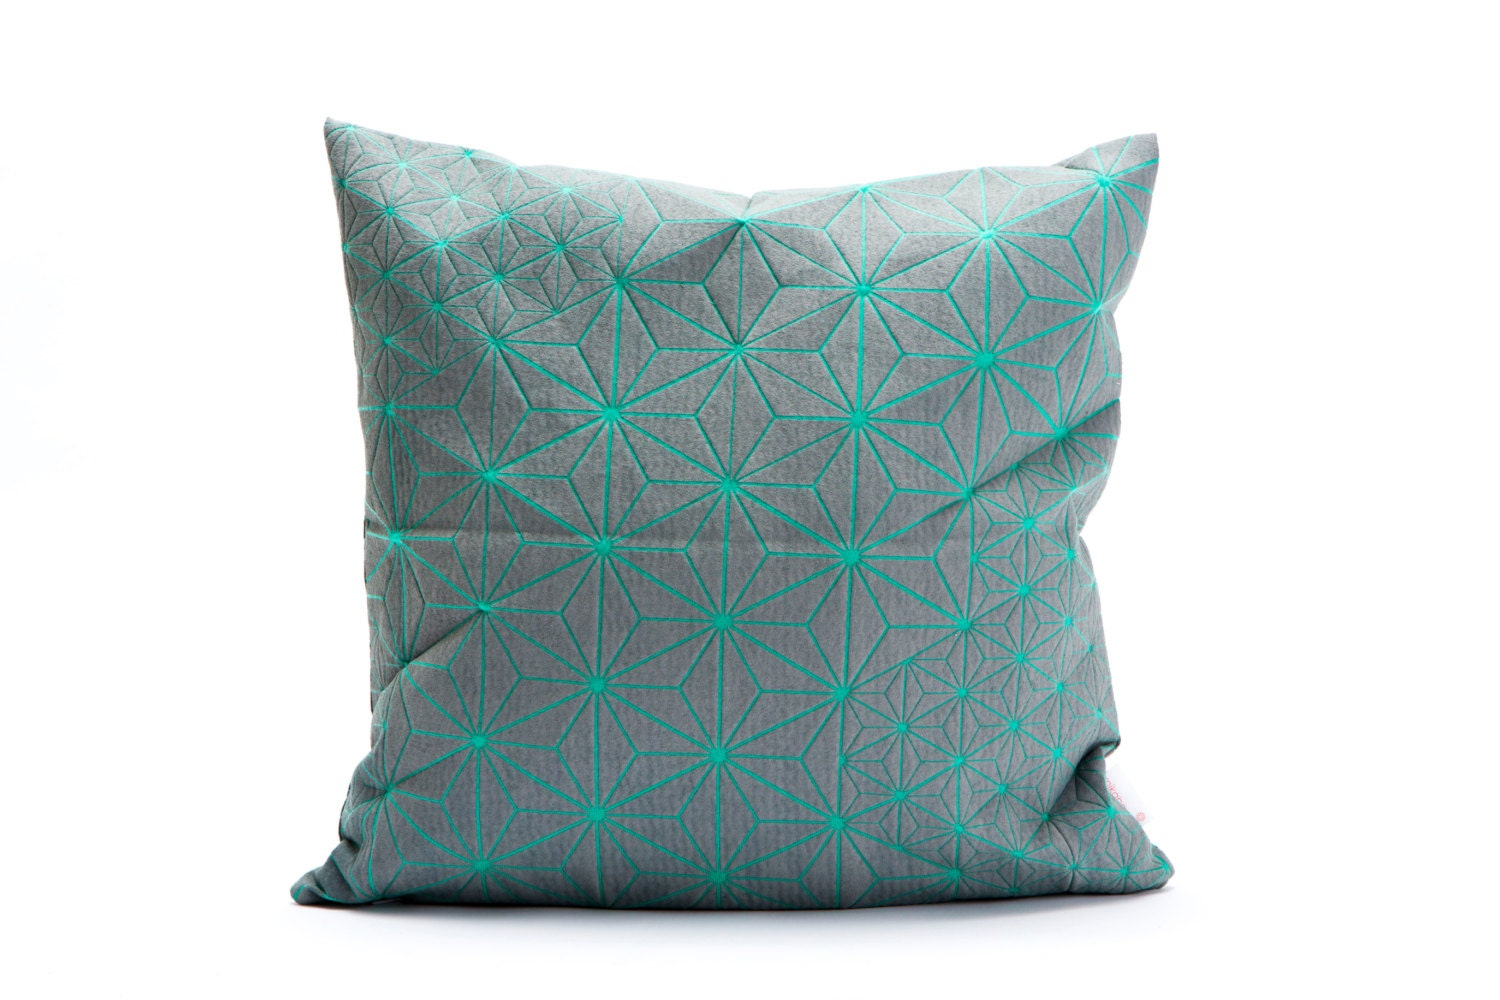 Throw Pillow Turquoise : Turquoise & grey designer throw pillow cover 15.7x15.7.